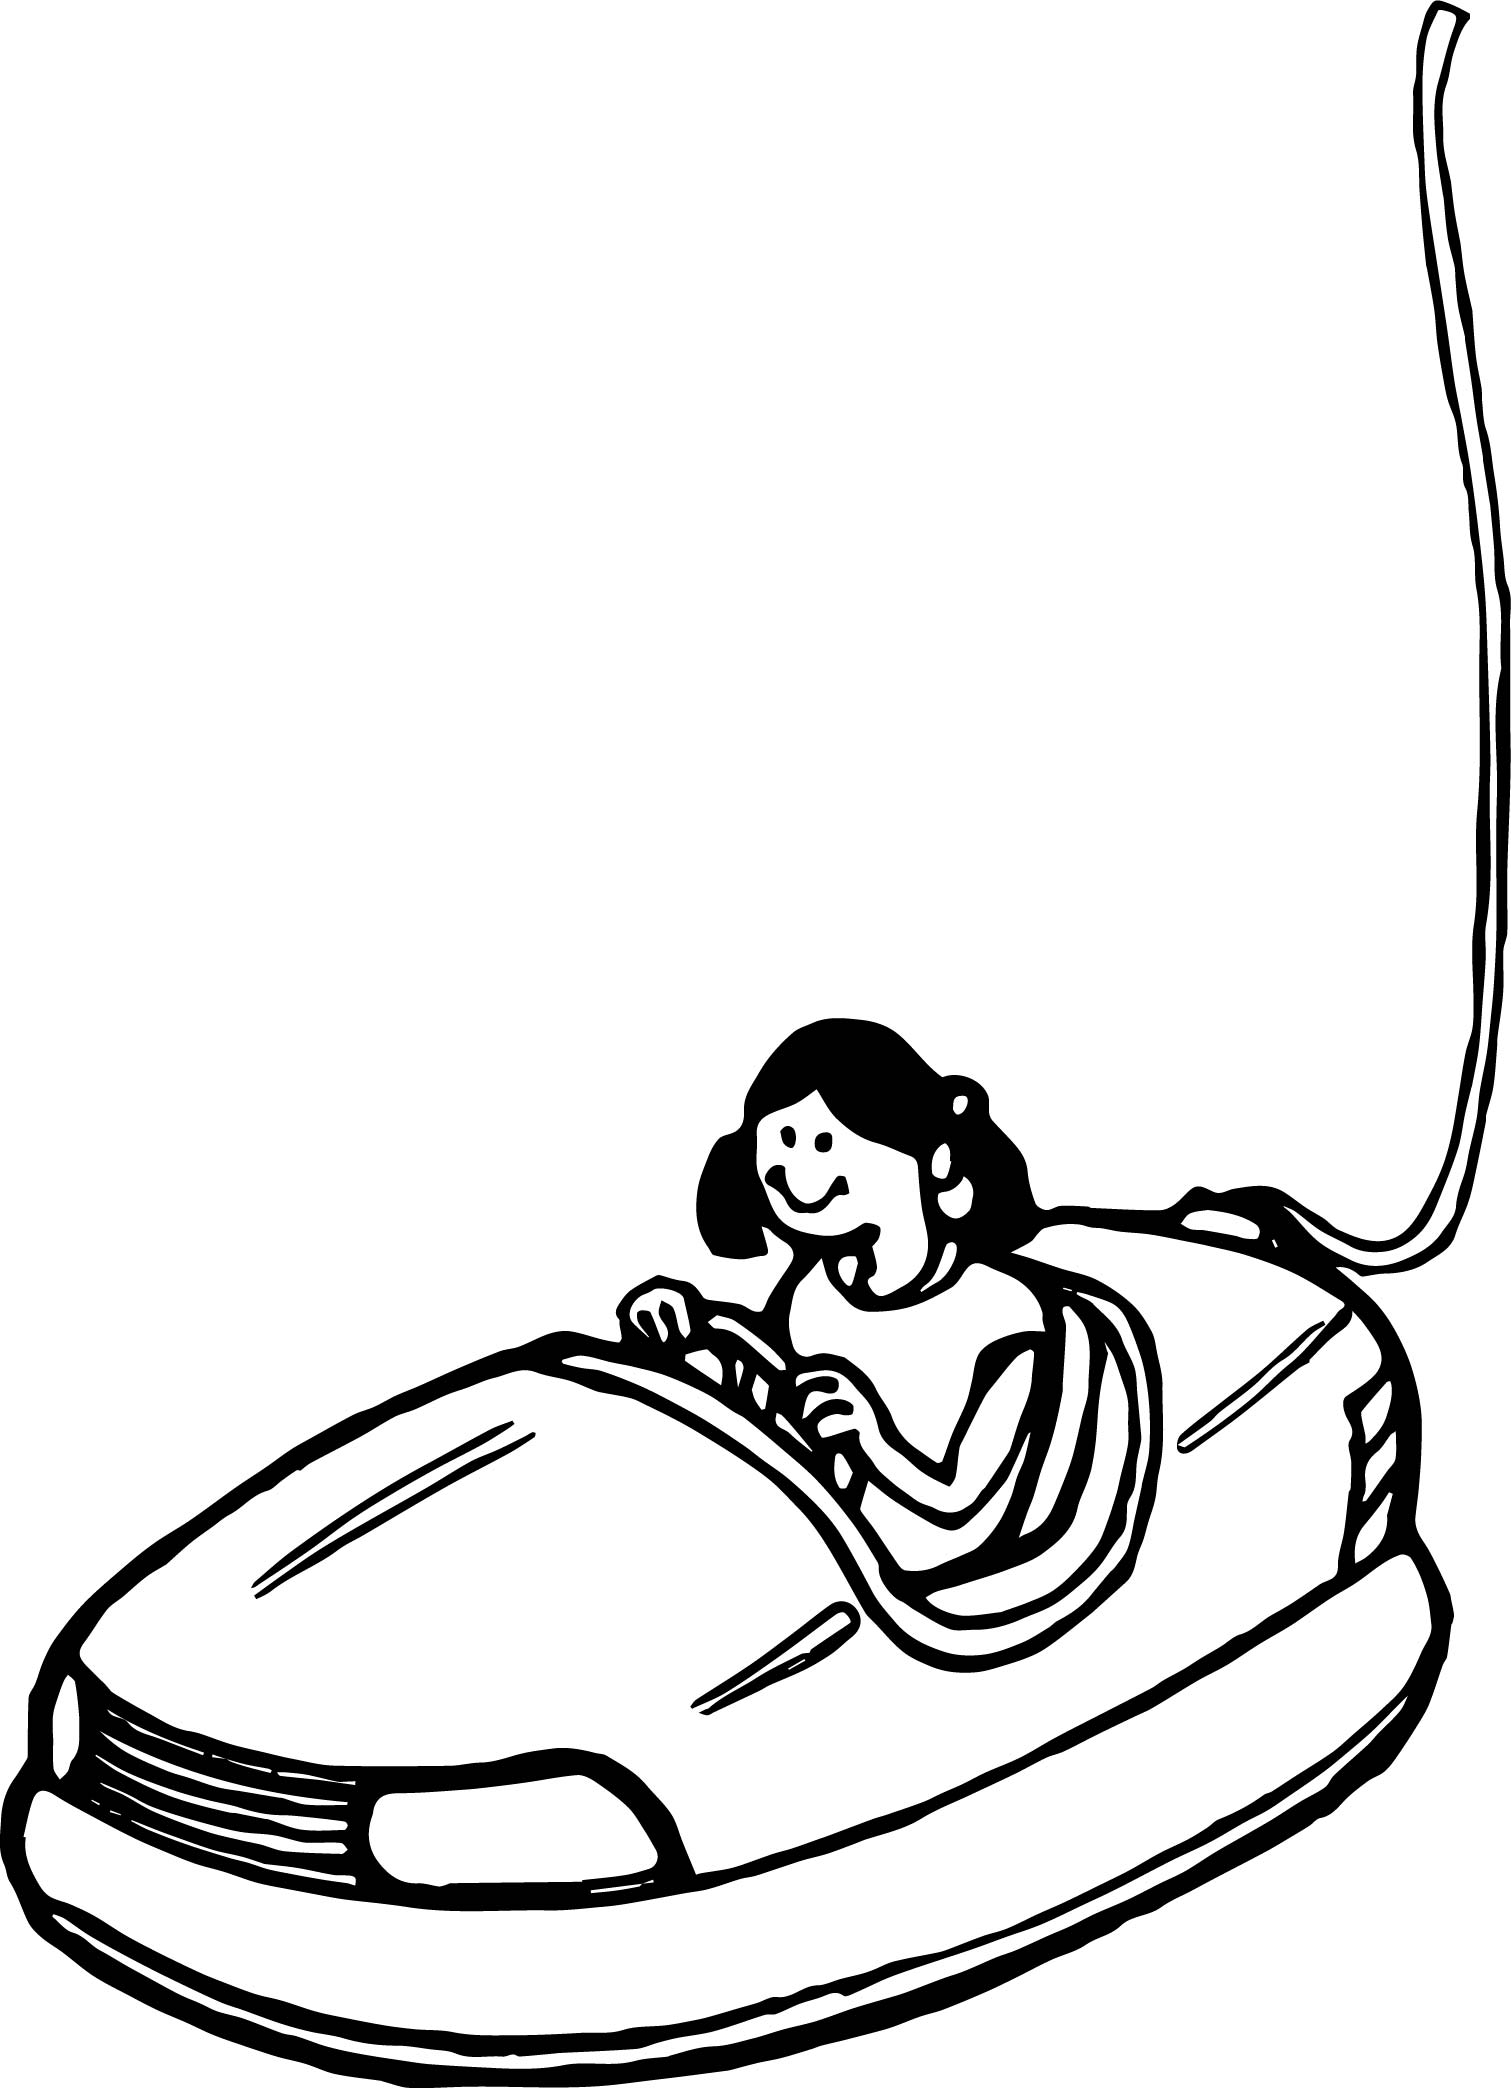 Electric Car Coloring Pages : Electric toy car coloring page wecoloringpage